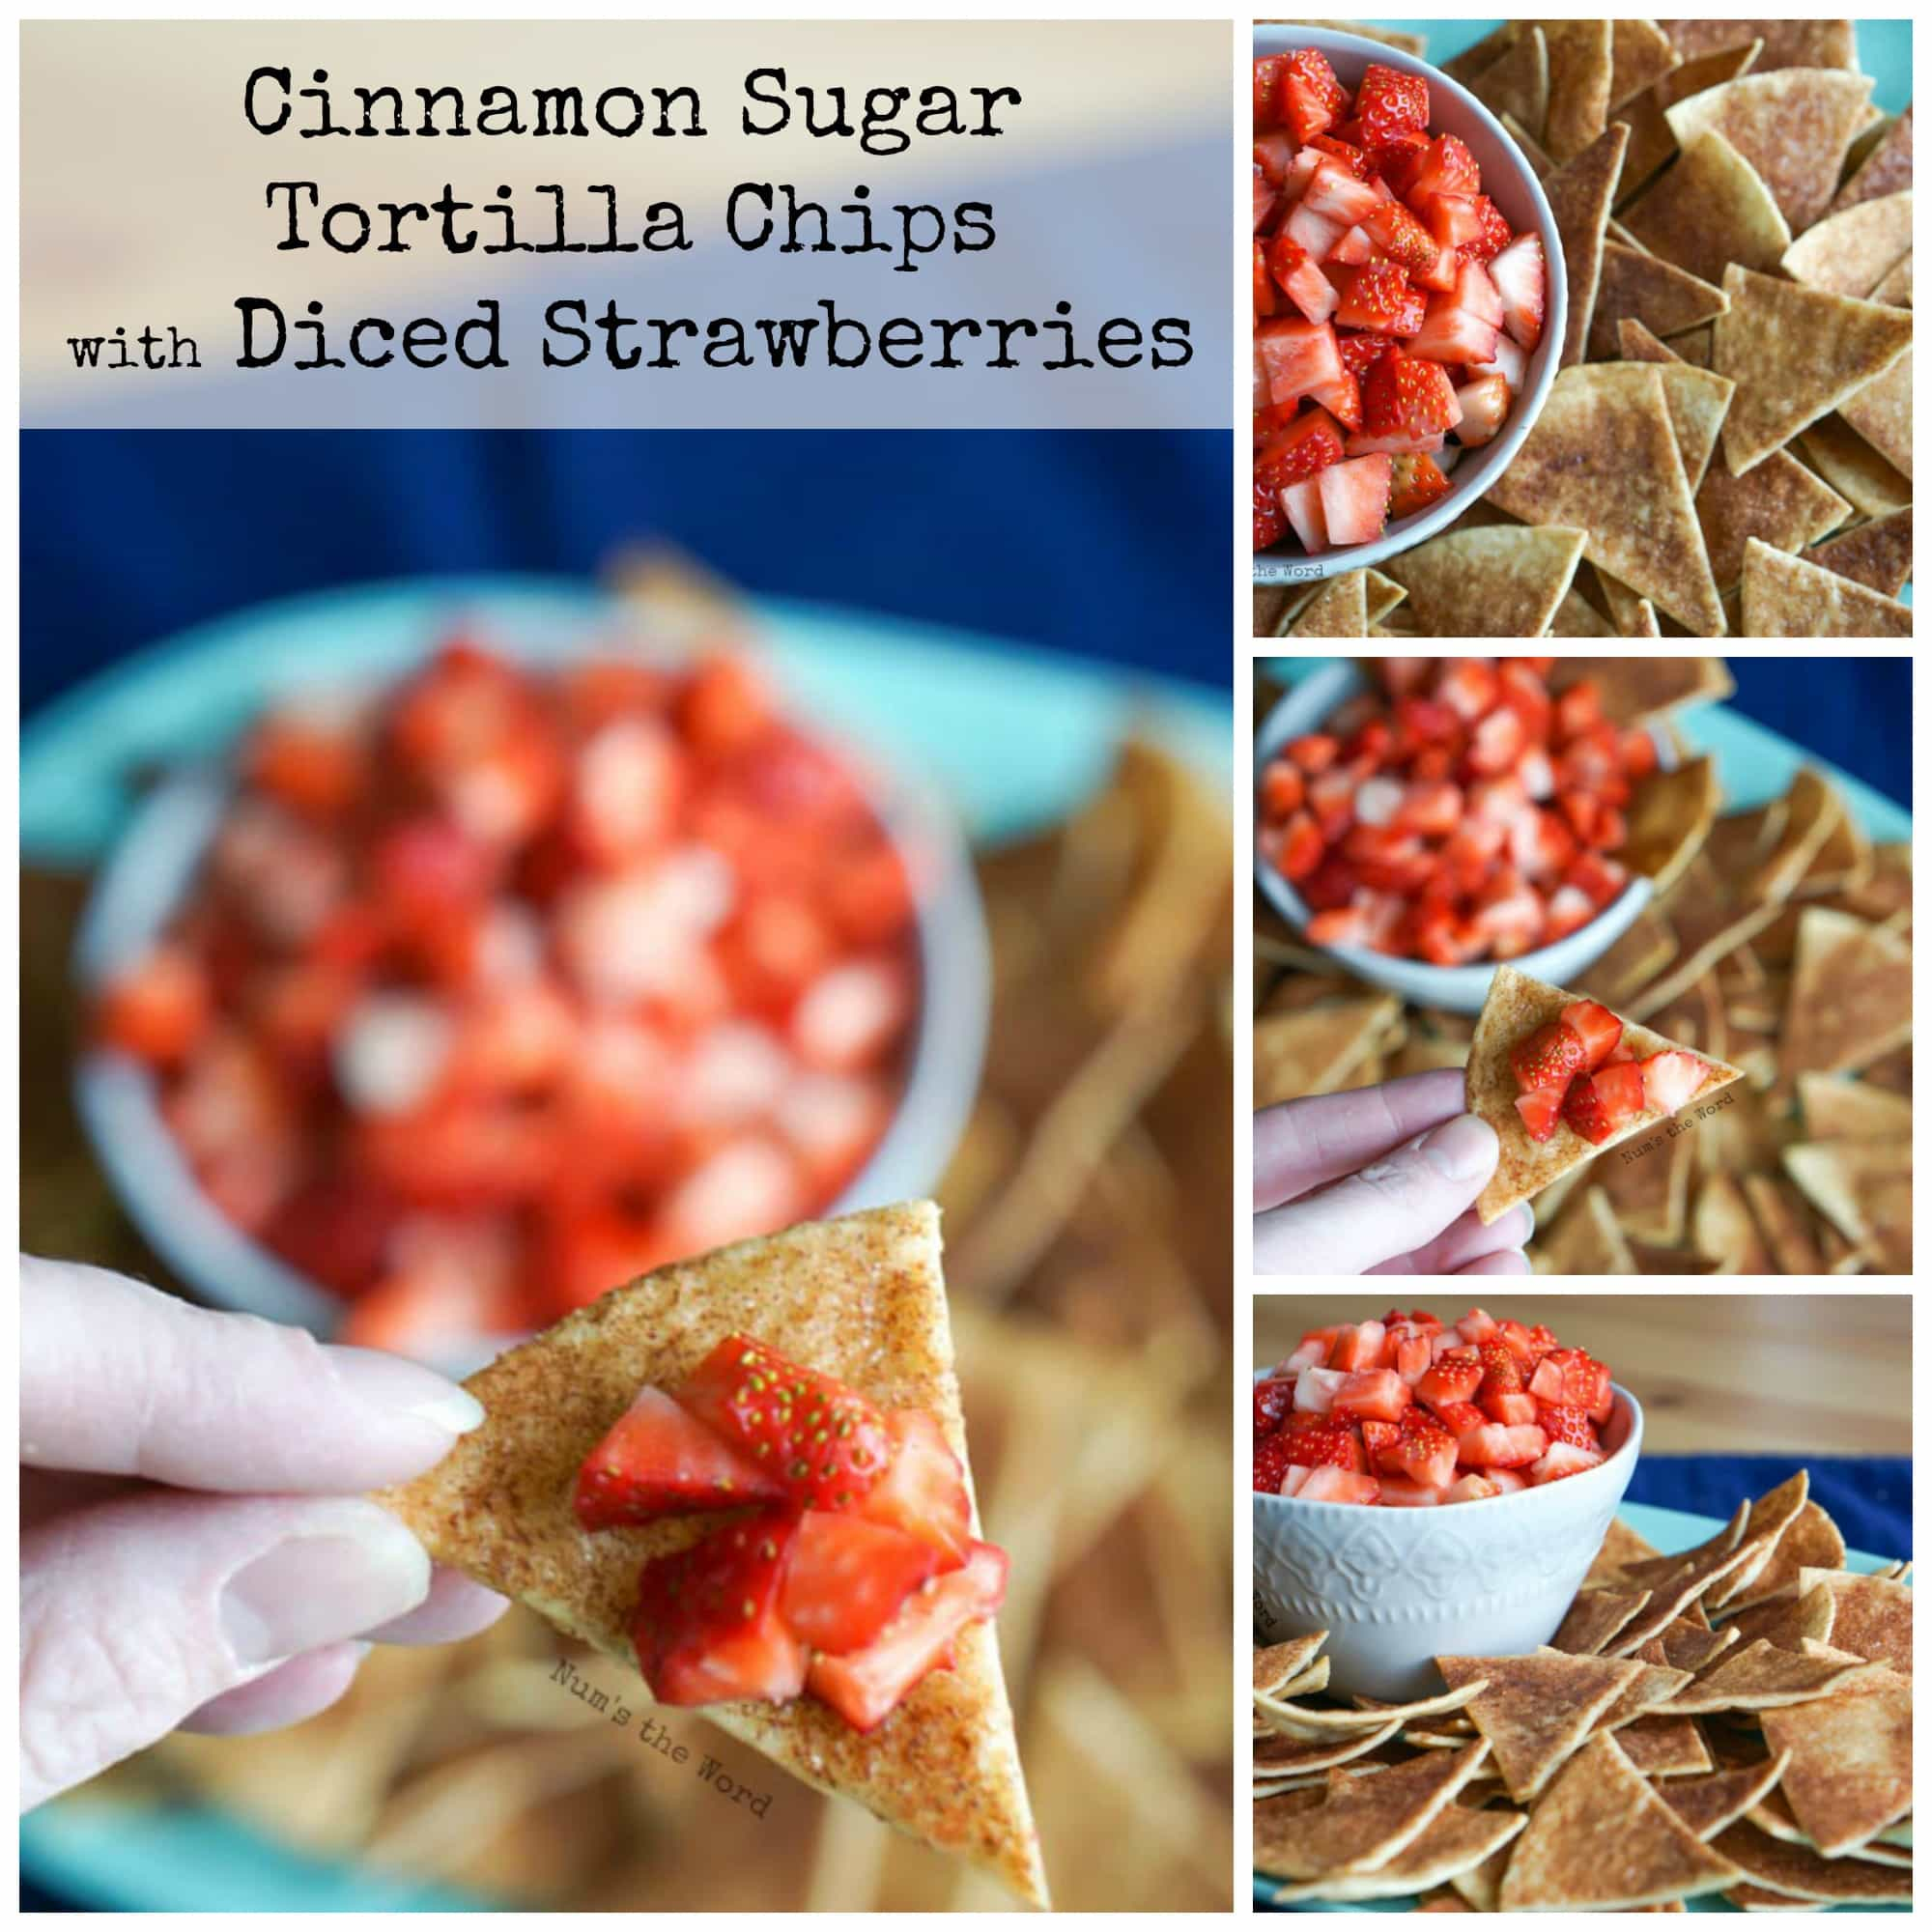 Cinnamon Sugar Tortilla Chips With Diced Strawberries